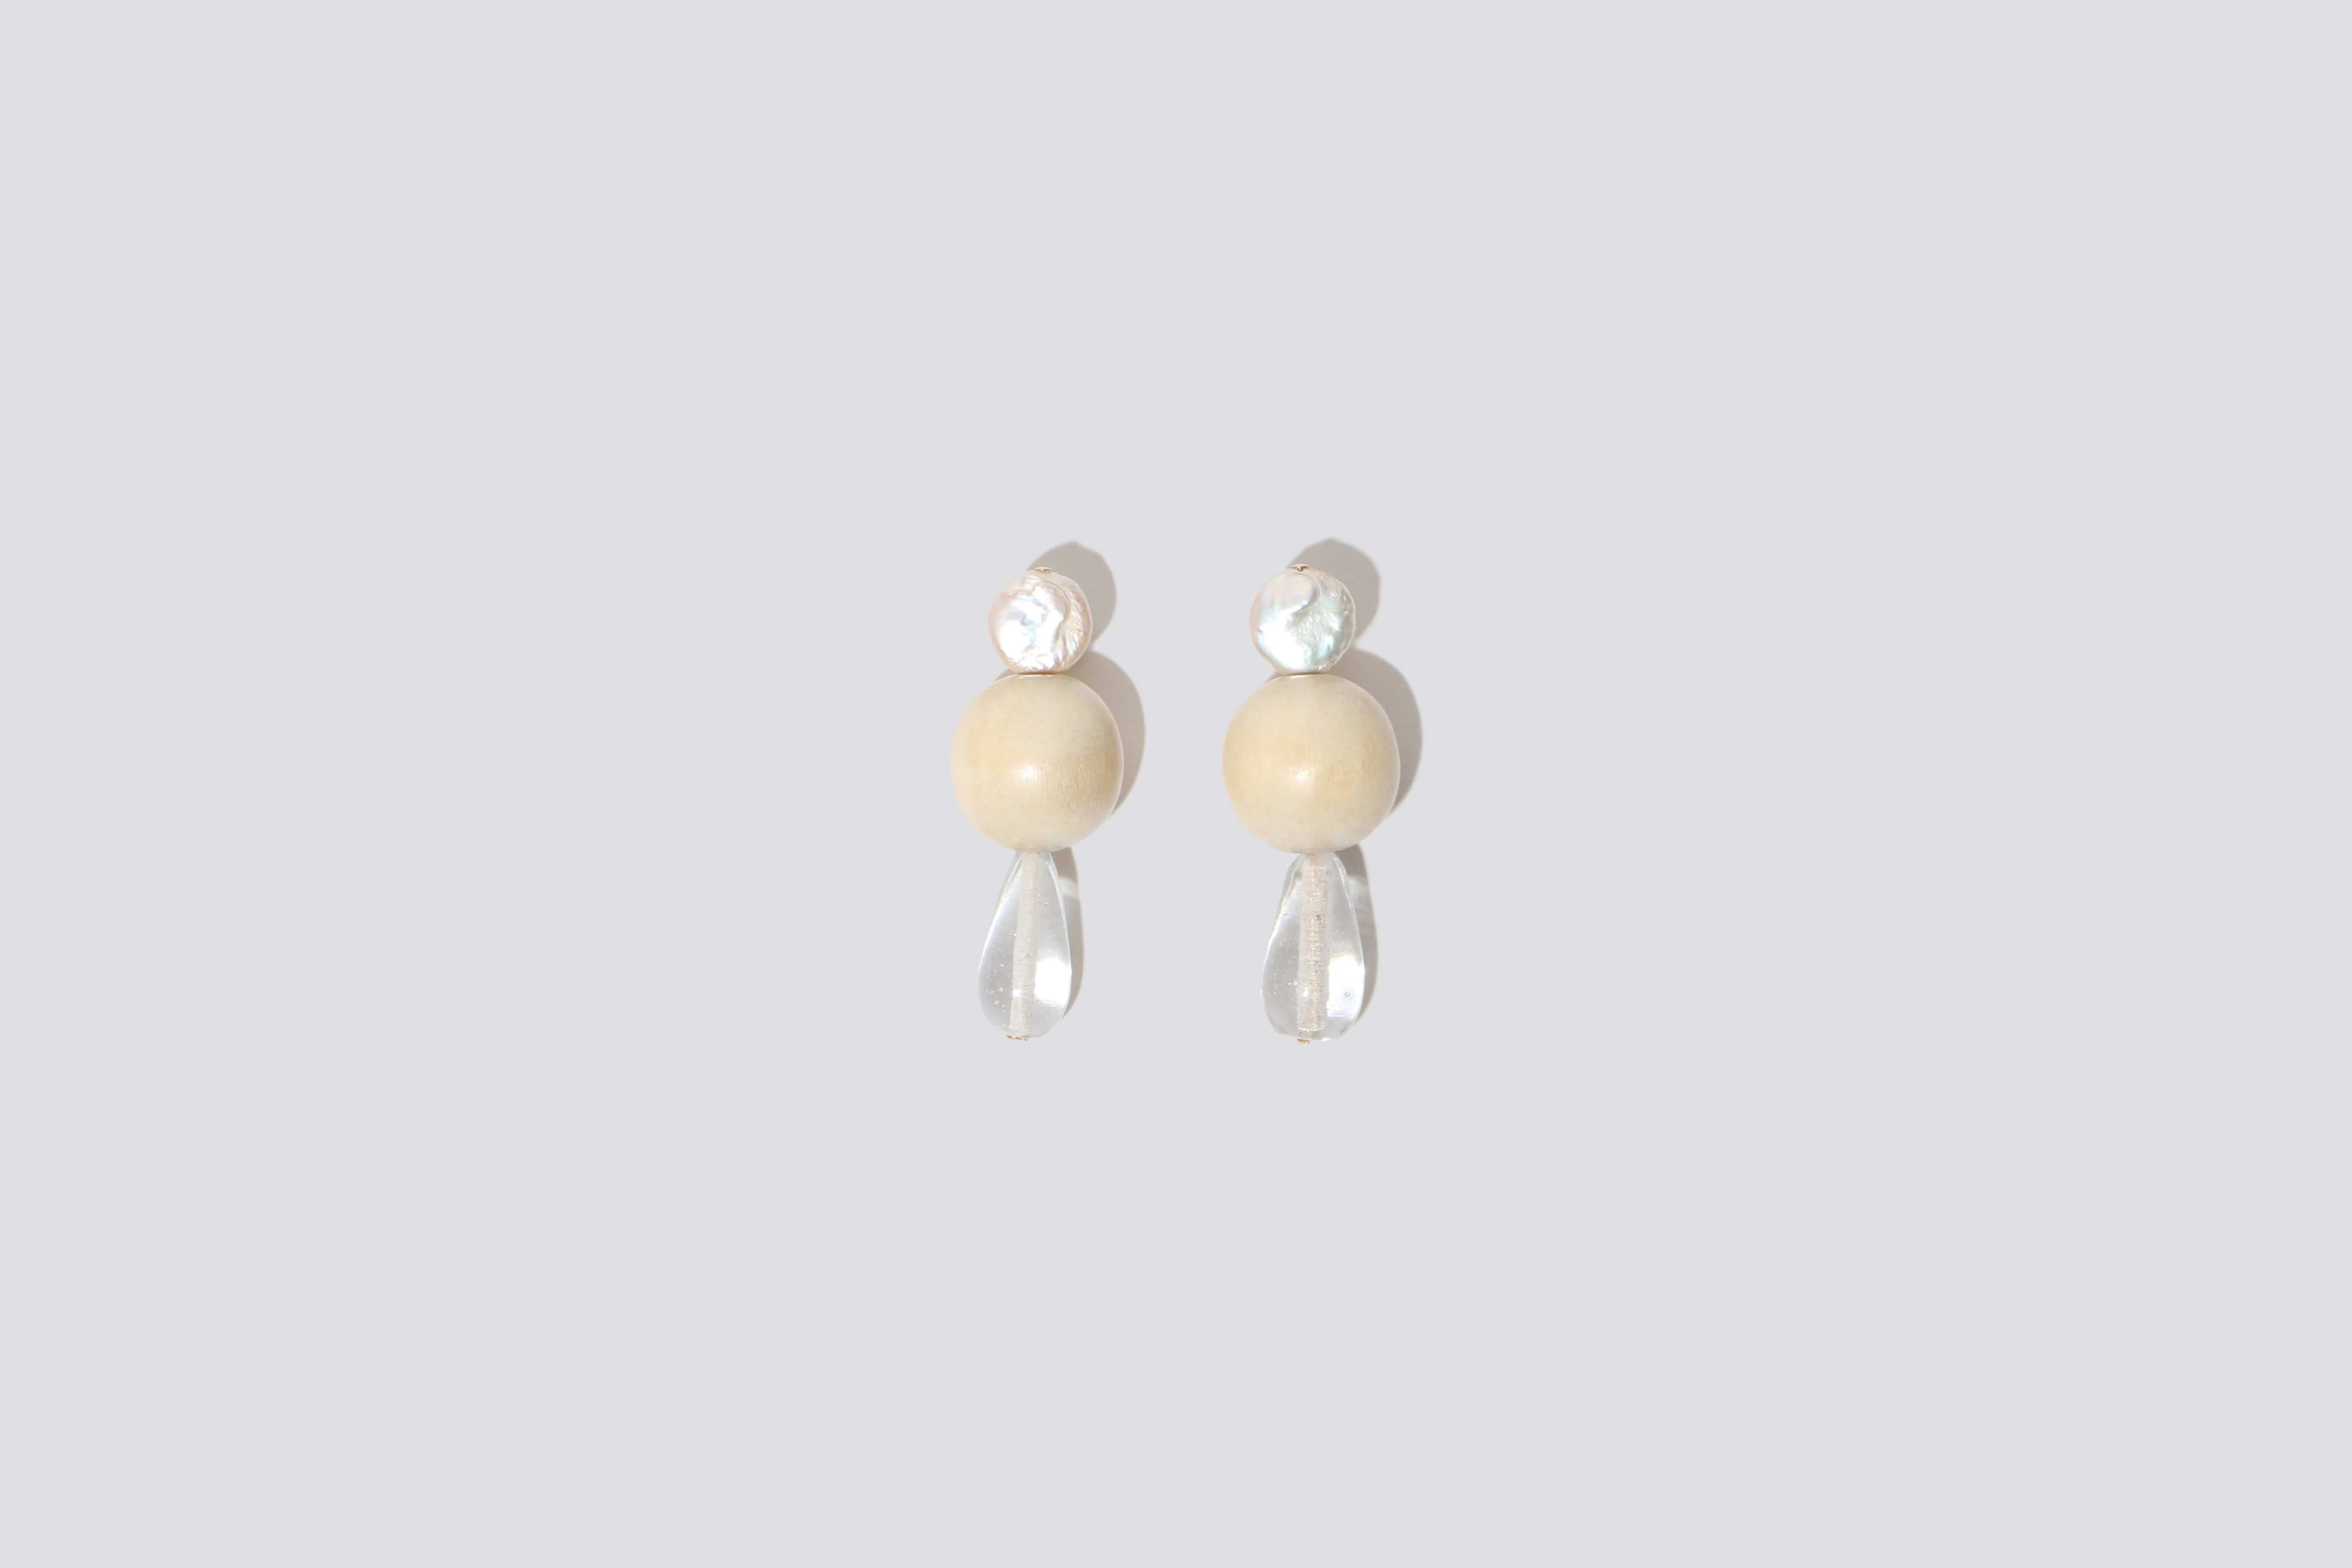 Maimoun NST Studio Off-White Earring Drops